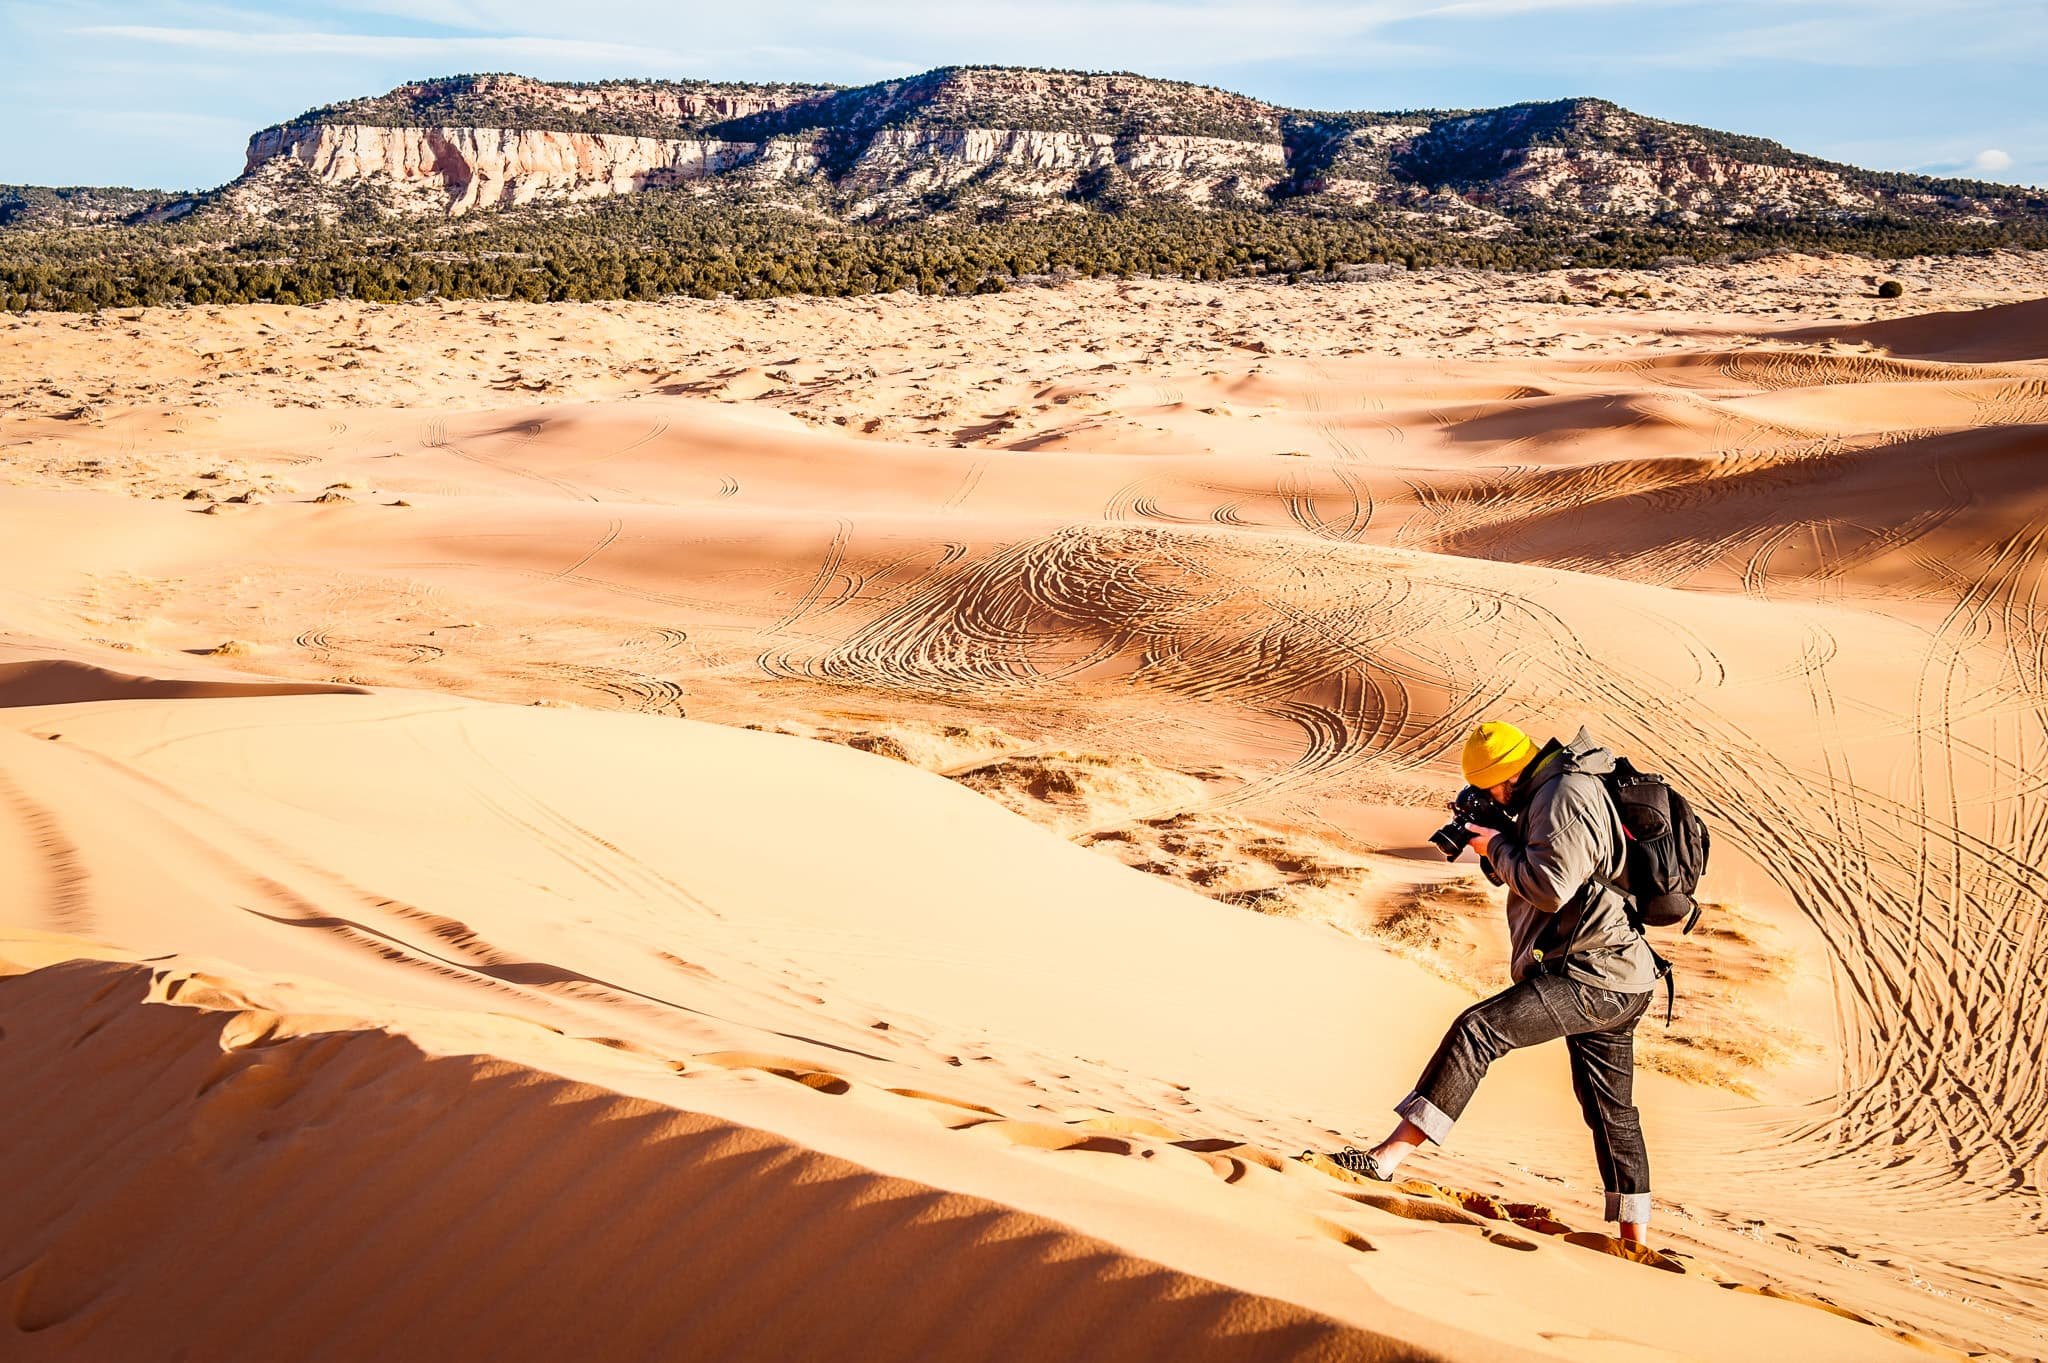 Minneapolis Commercial Photographer shoots photographs in the Coral Pink Sand Dunes in Utah